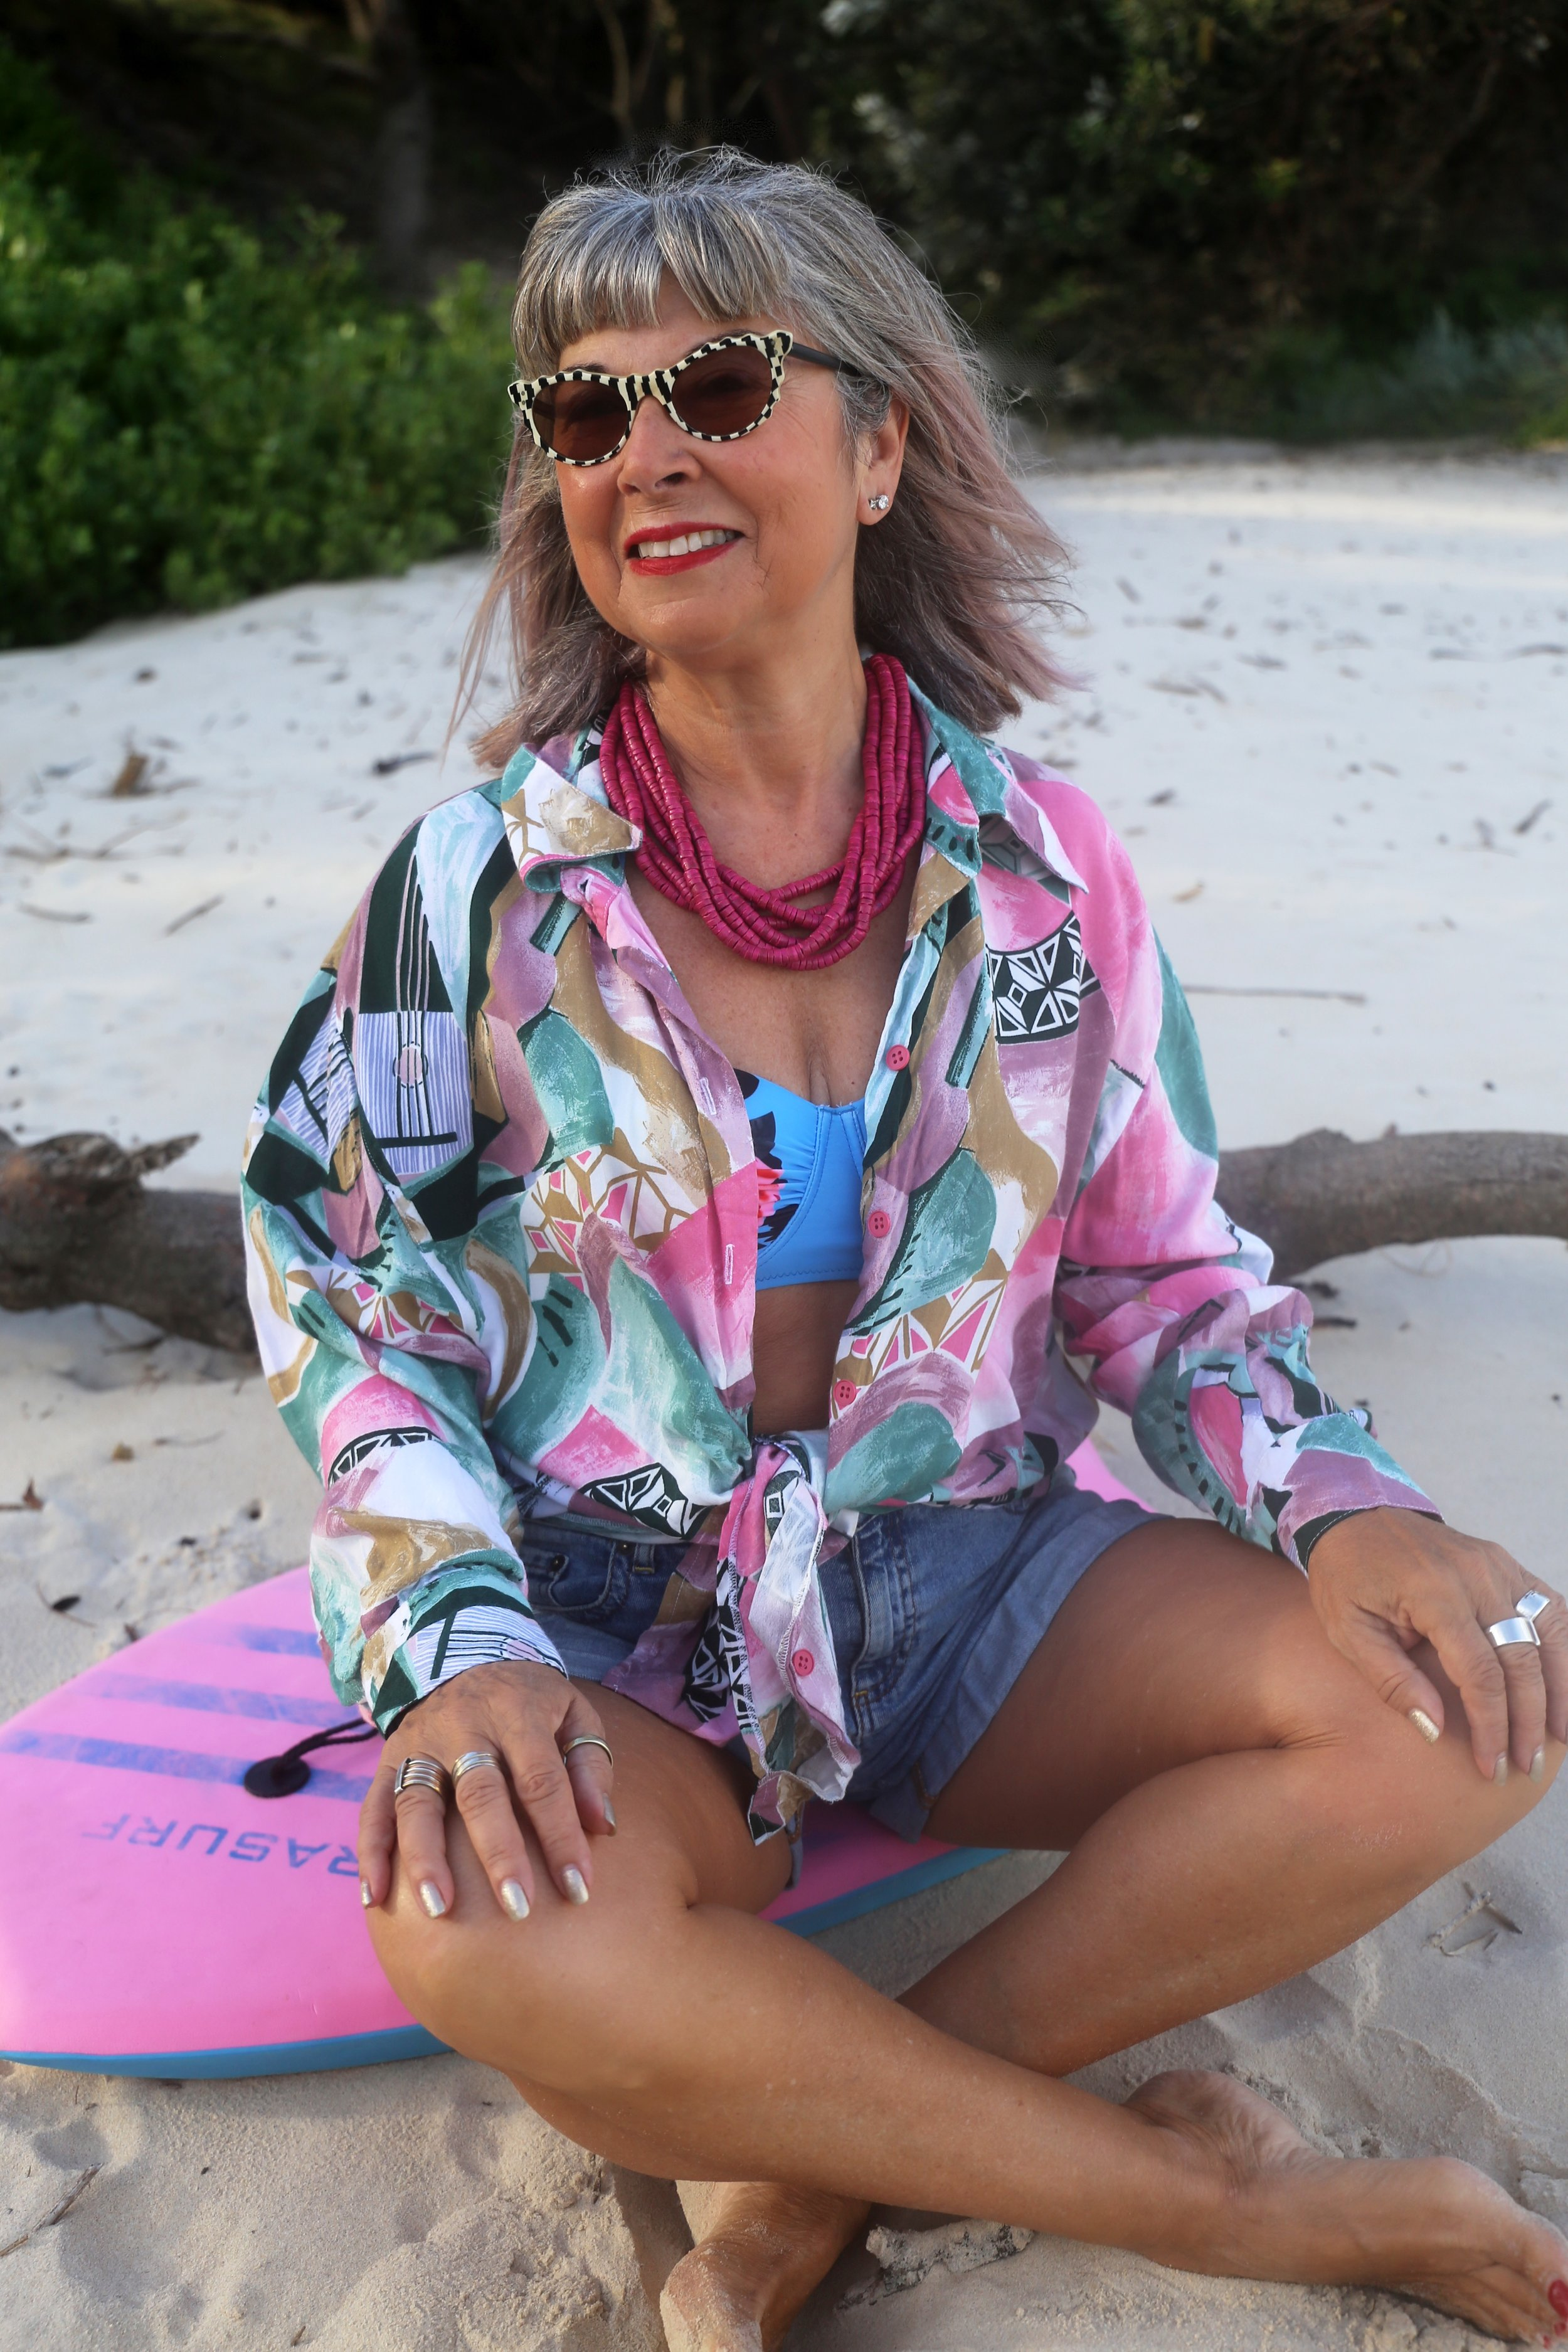 Vintage shirt, vintage sunglasses, retro two piece & a pink necklace from East to complete the look. I'm ready for the beach!